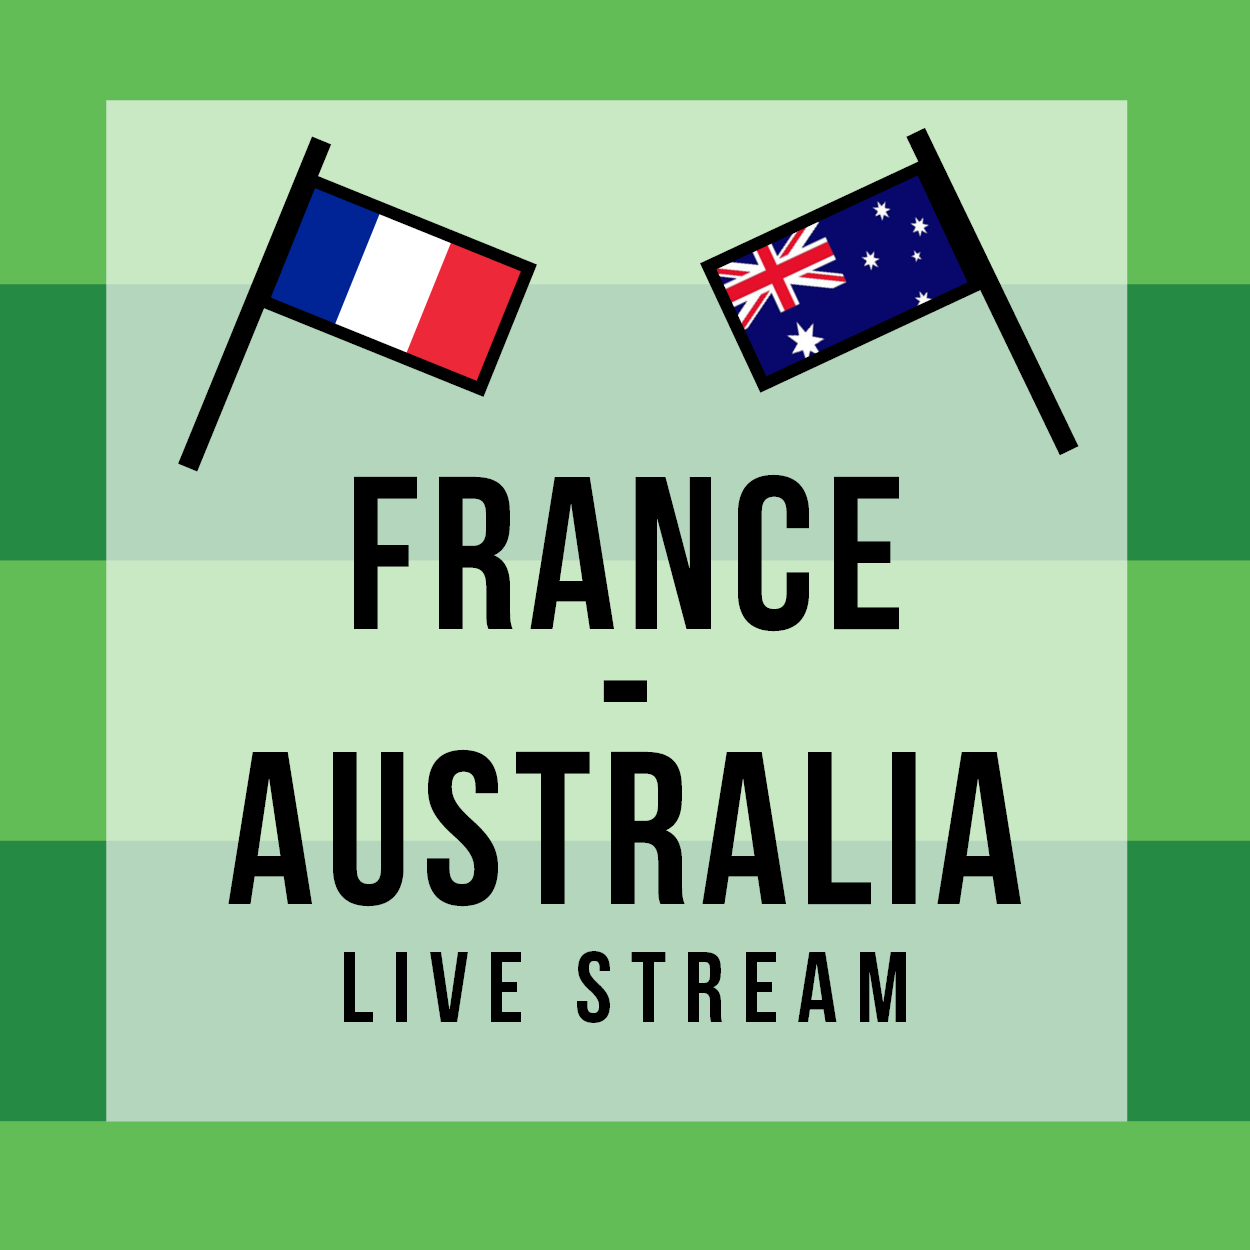 16th June 2018 - FRANCE - AUSTRALIE  Live stream - FIFA World Cup